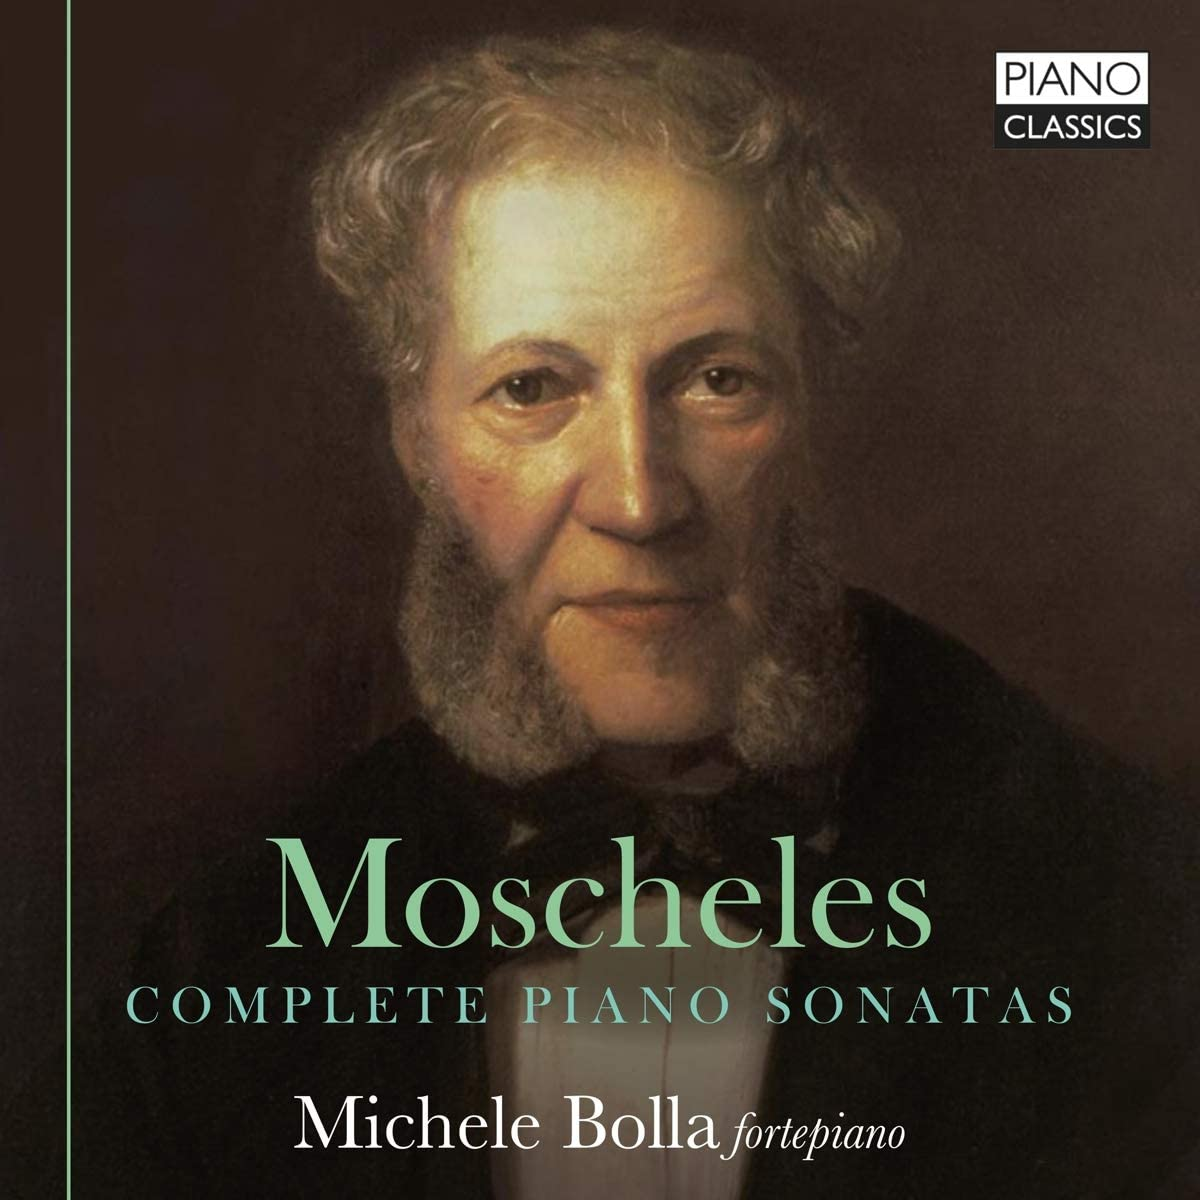 Review of MOSCHELES Complete Piano Sonatas (Michele Bolla)